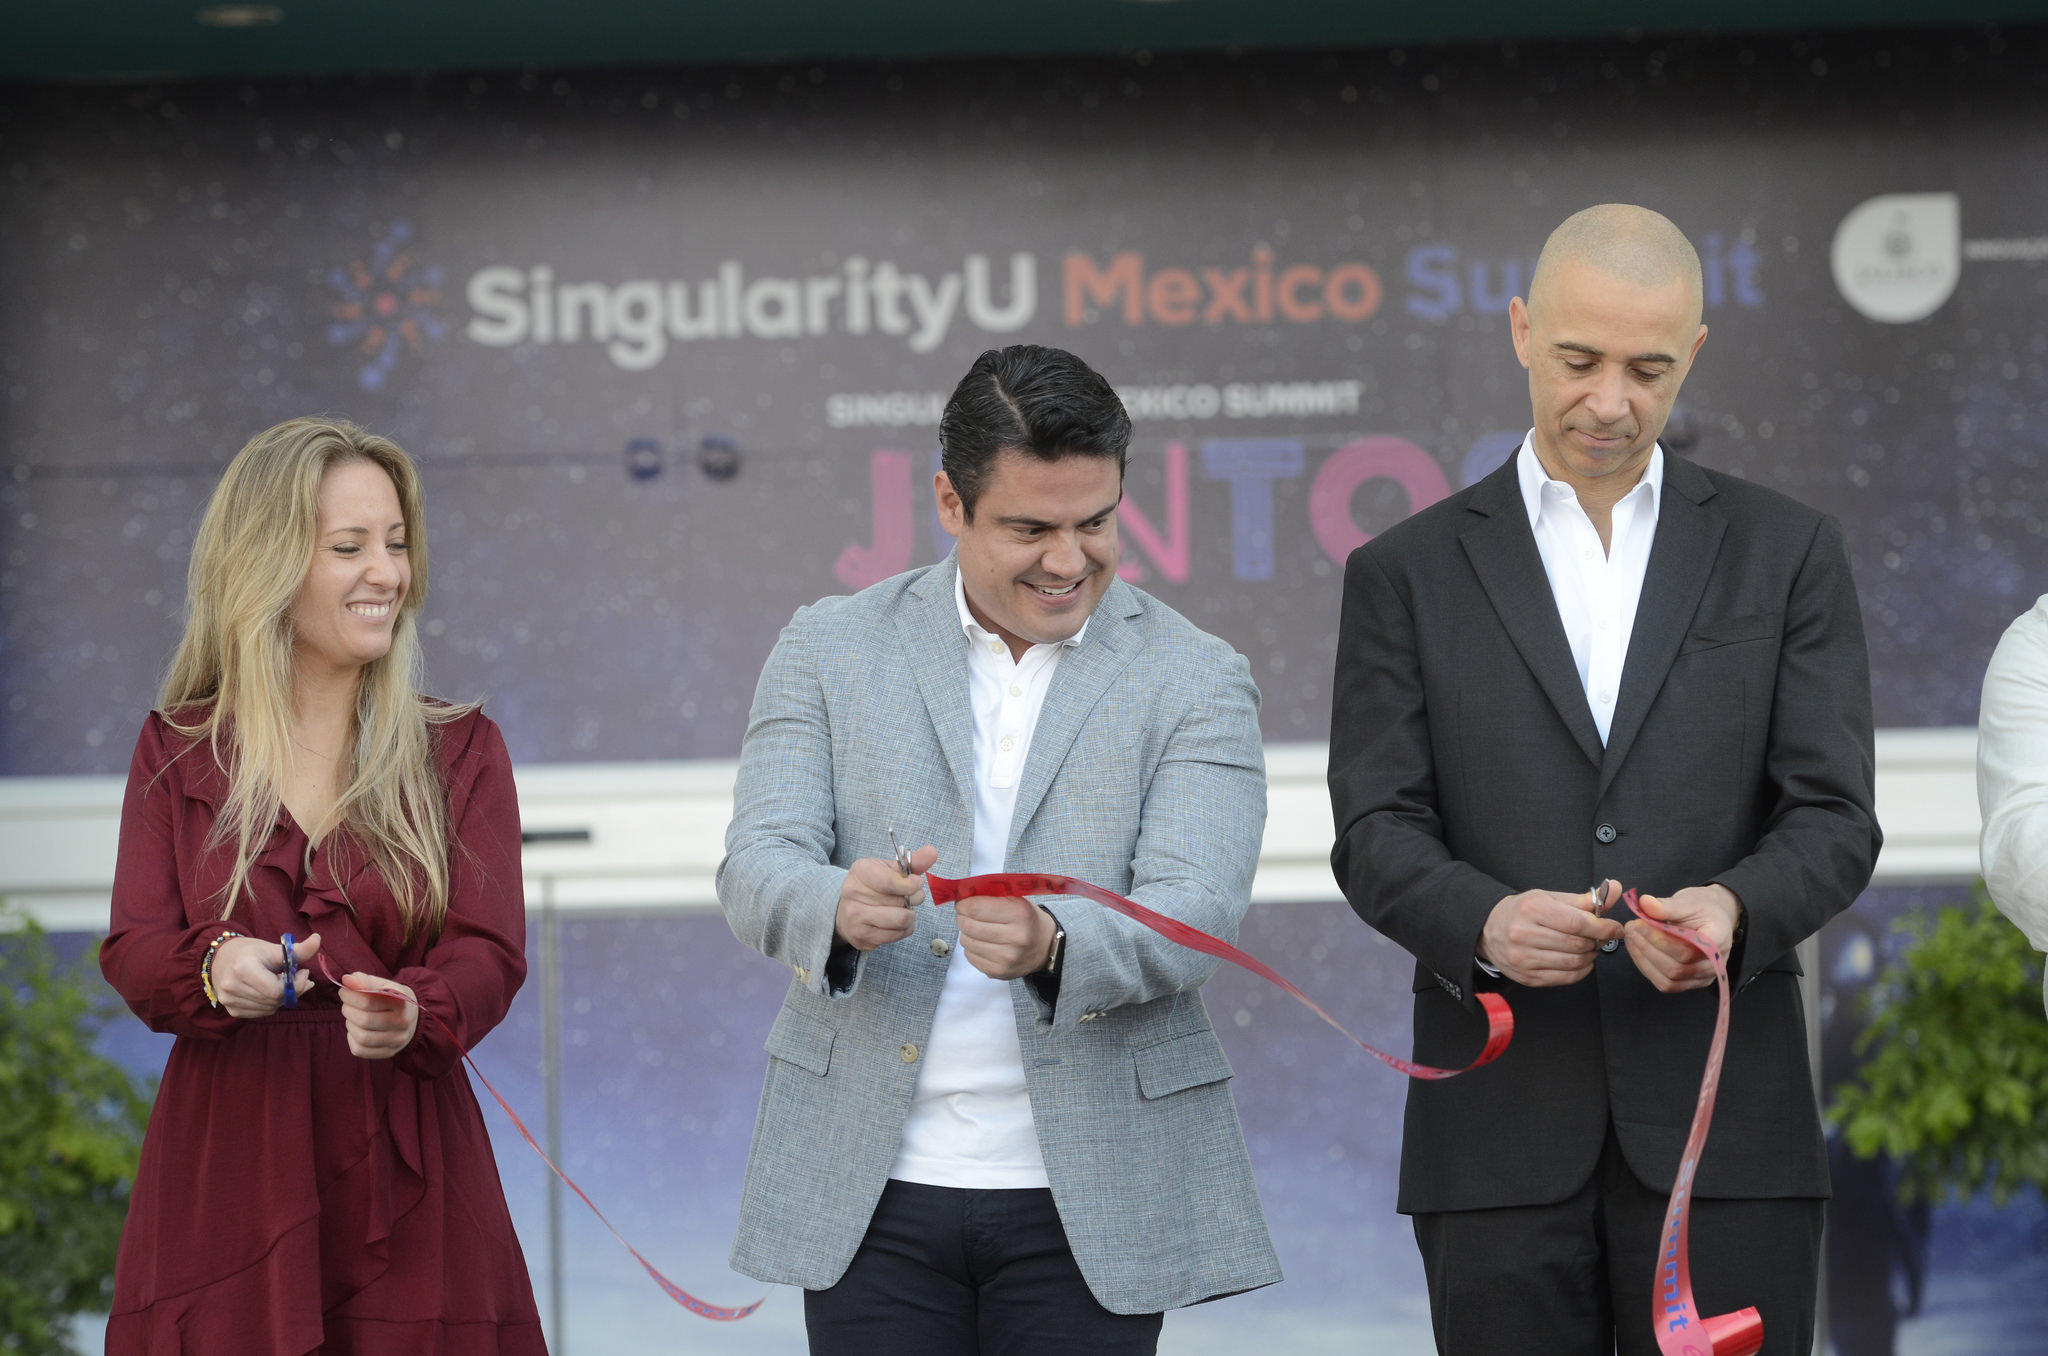 Photo of Inaugura Aristóteles Sandoval SingularityU México Summit en Puerto Vallarta